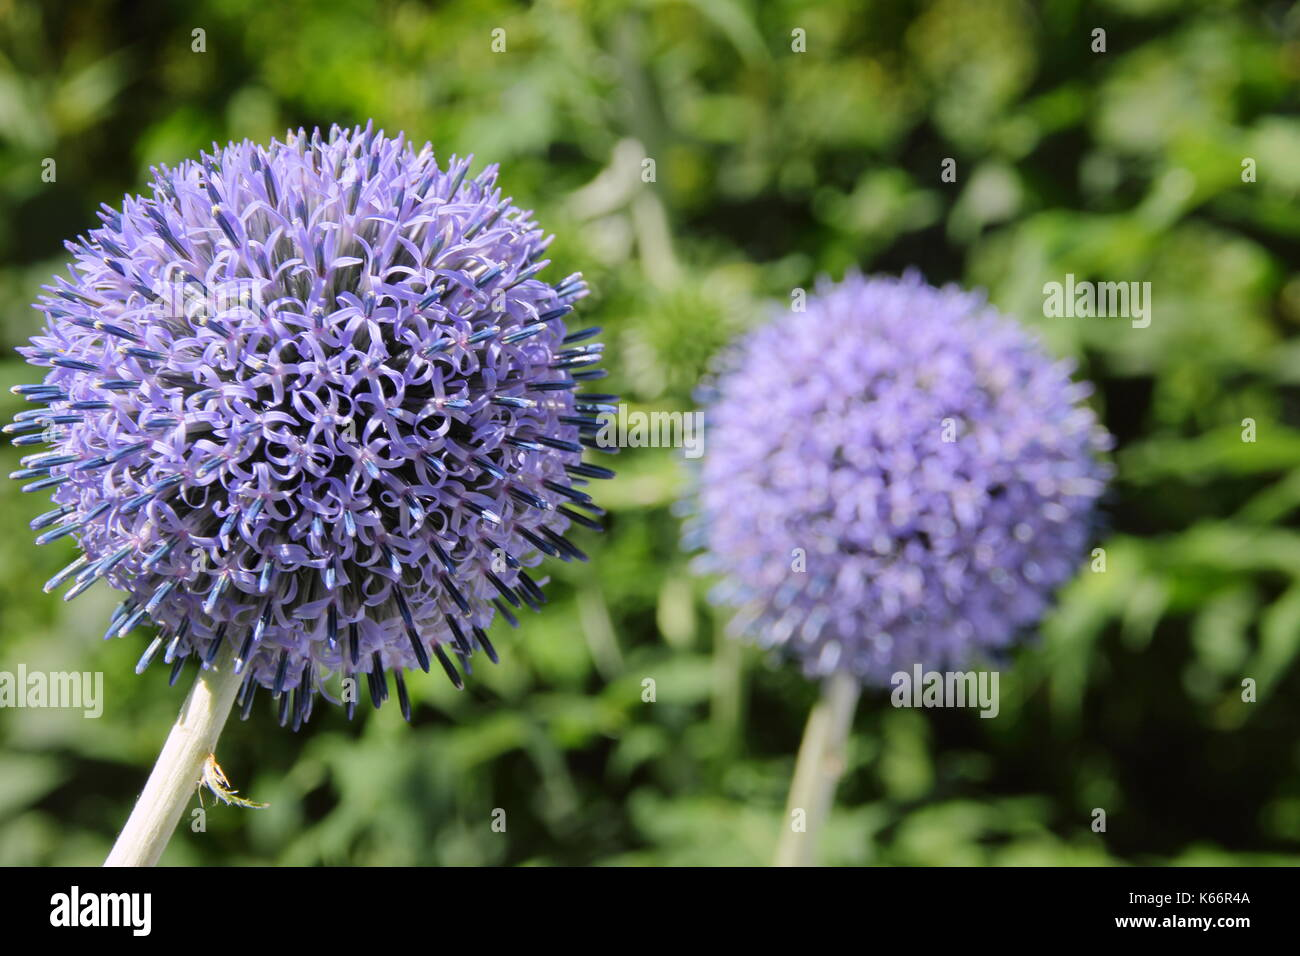 Globe Thistles (Echinops Bannaticus) 'Taplow blue' flower flourishing in an English garden border in summer (July) - Stock Image